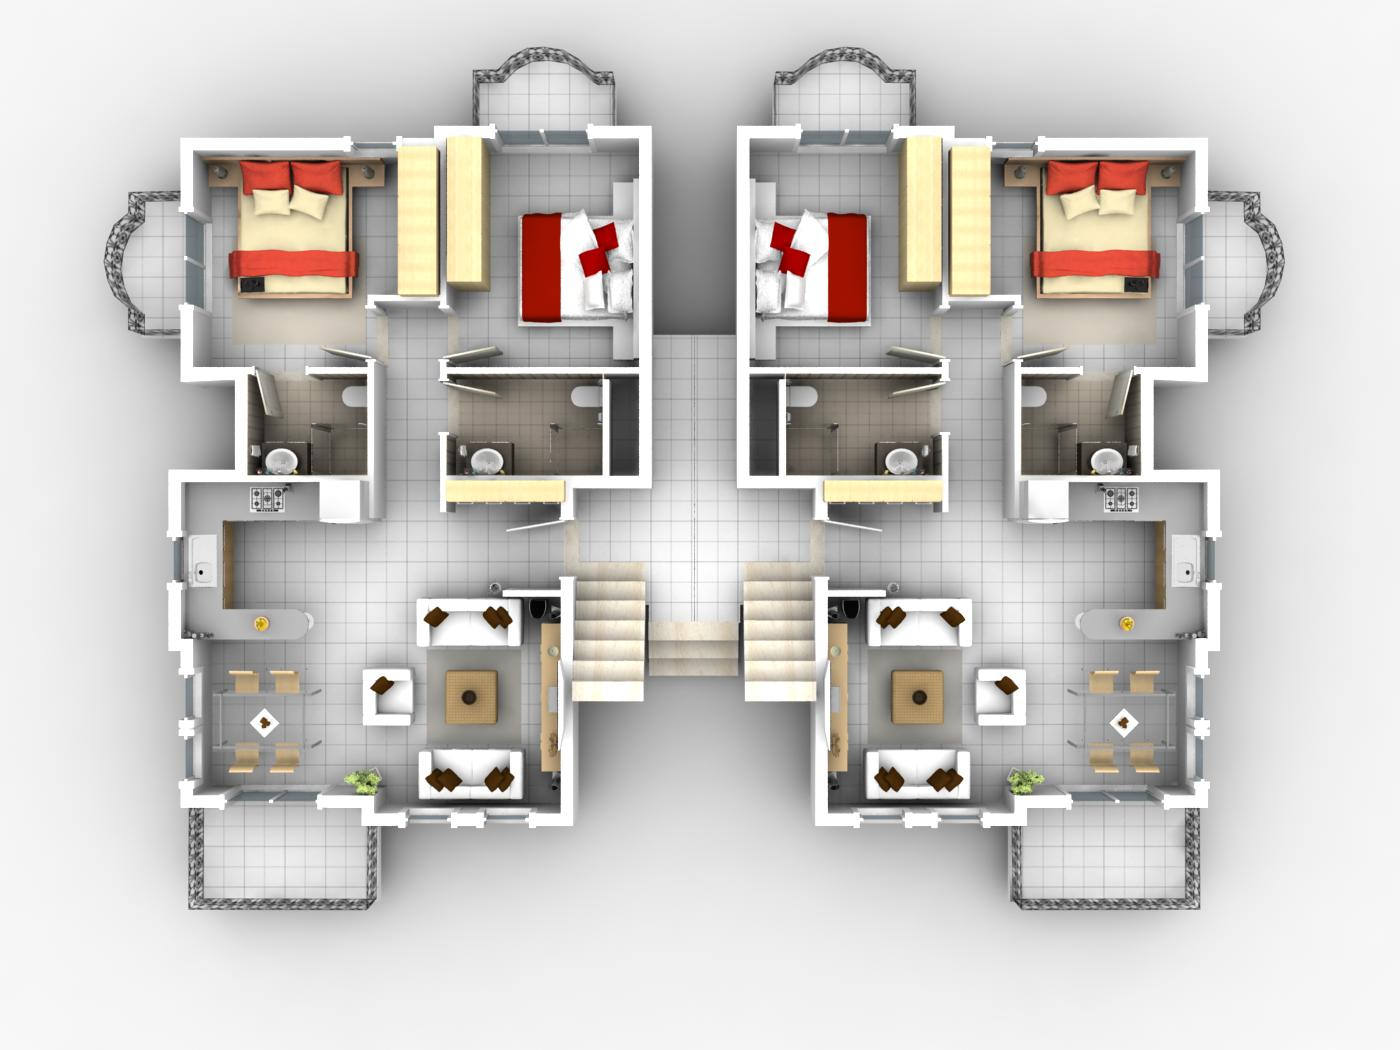 best apartment floor plans 2 bedroom pictures 01 - Small ... on best small house plans, best narrow lot house plans, best luxury house plans, simple 2 bedroom ranch plans, best barn plans, 2 bed home plans, two bed house plans, best shooting house plans, only 2 bedroom home plans, best tree house plans, 2 br 1 bath house plans, 2 bed 2 bath house plans, best 1000 sq ft house plans, best craftsman home plans, best country house plans, 2 bedroom floor plans, best shop plans, best empty nester house plans, best l-shaped house plans, best 2 story house plans,